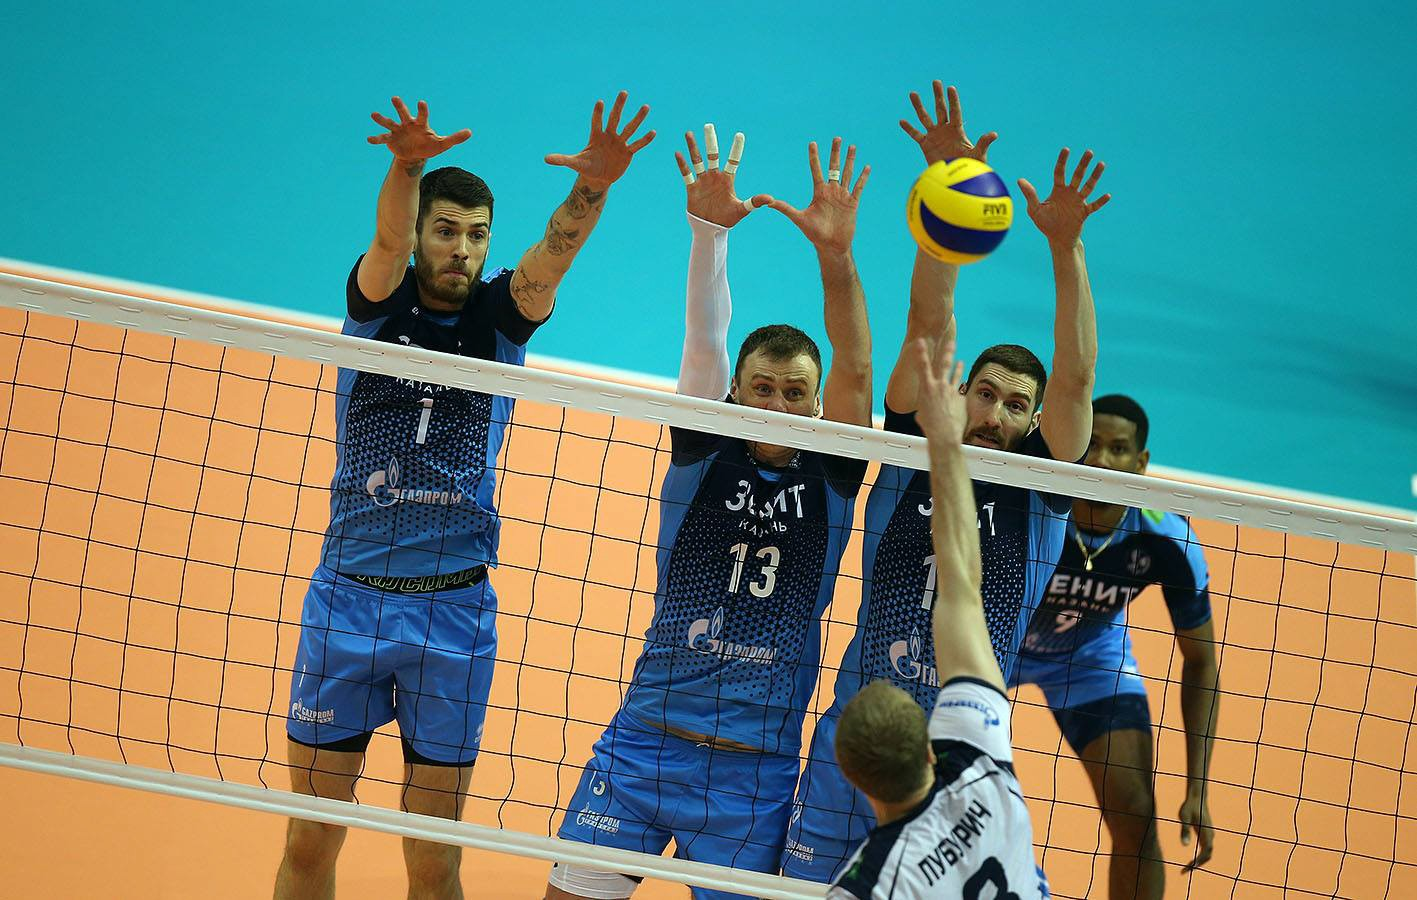 News 12 13 May Sees The Final Four Of The Volleyball Champions League 2018 Zenit Kazan Play At Home Errea